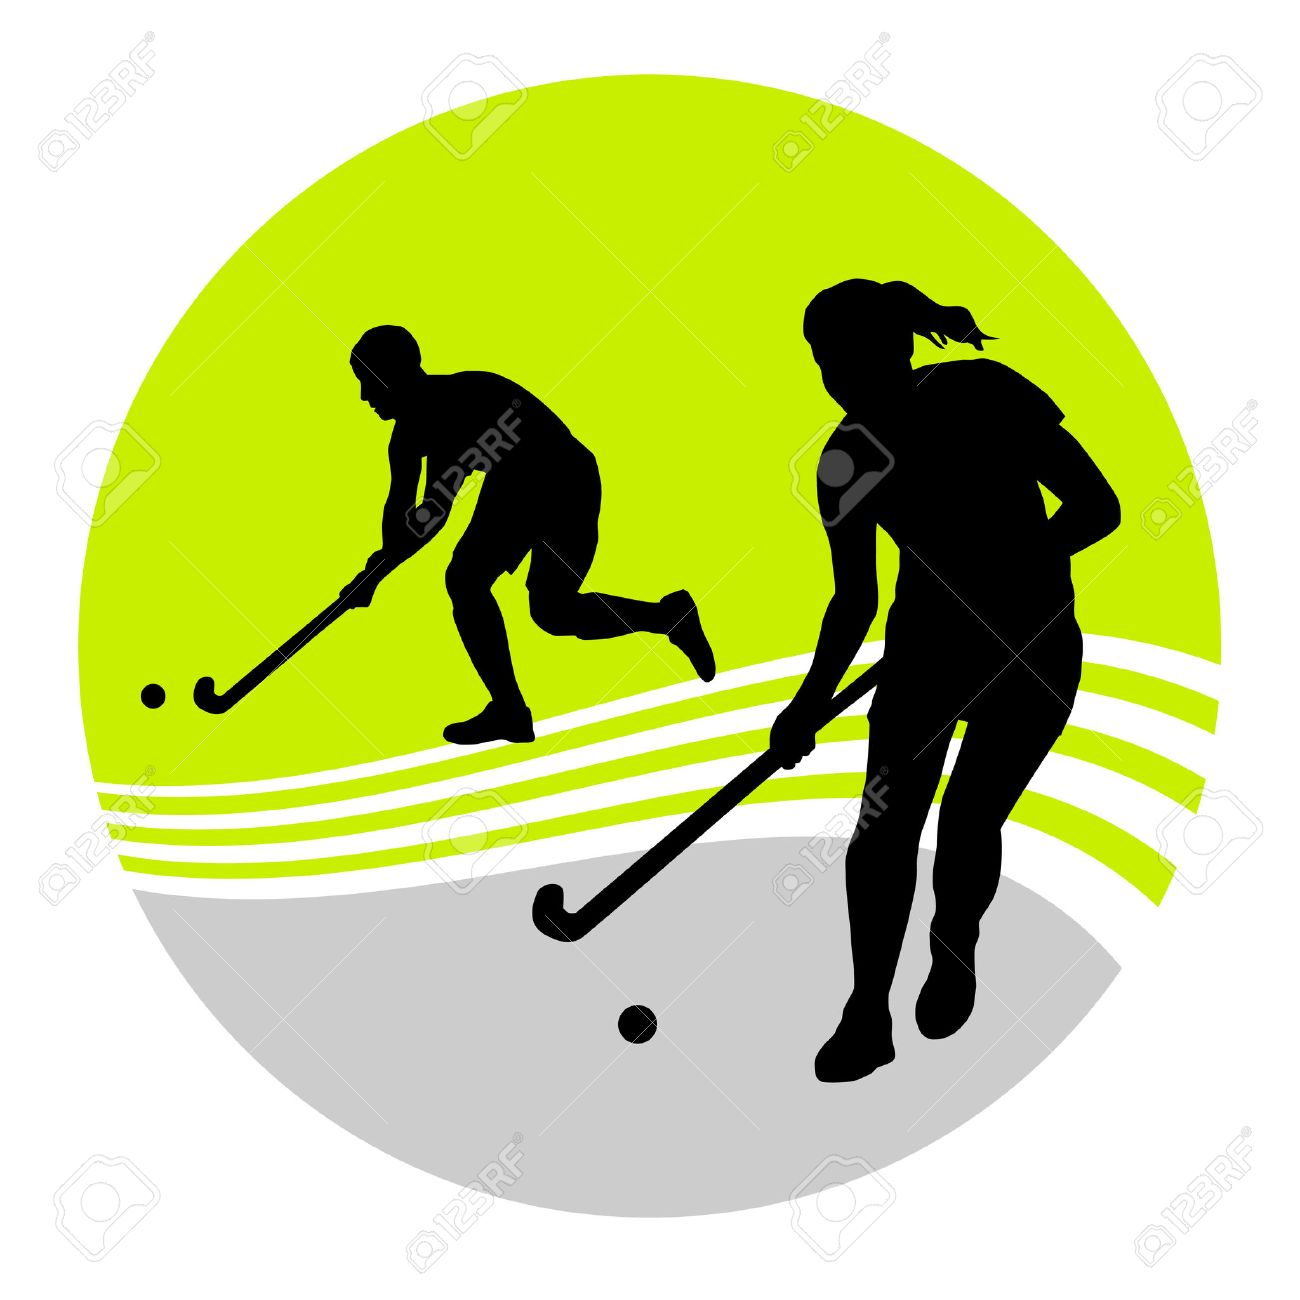 1,556 Field Hockey Game Stock Vector Illustration And Royalty Free ...